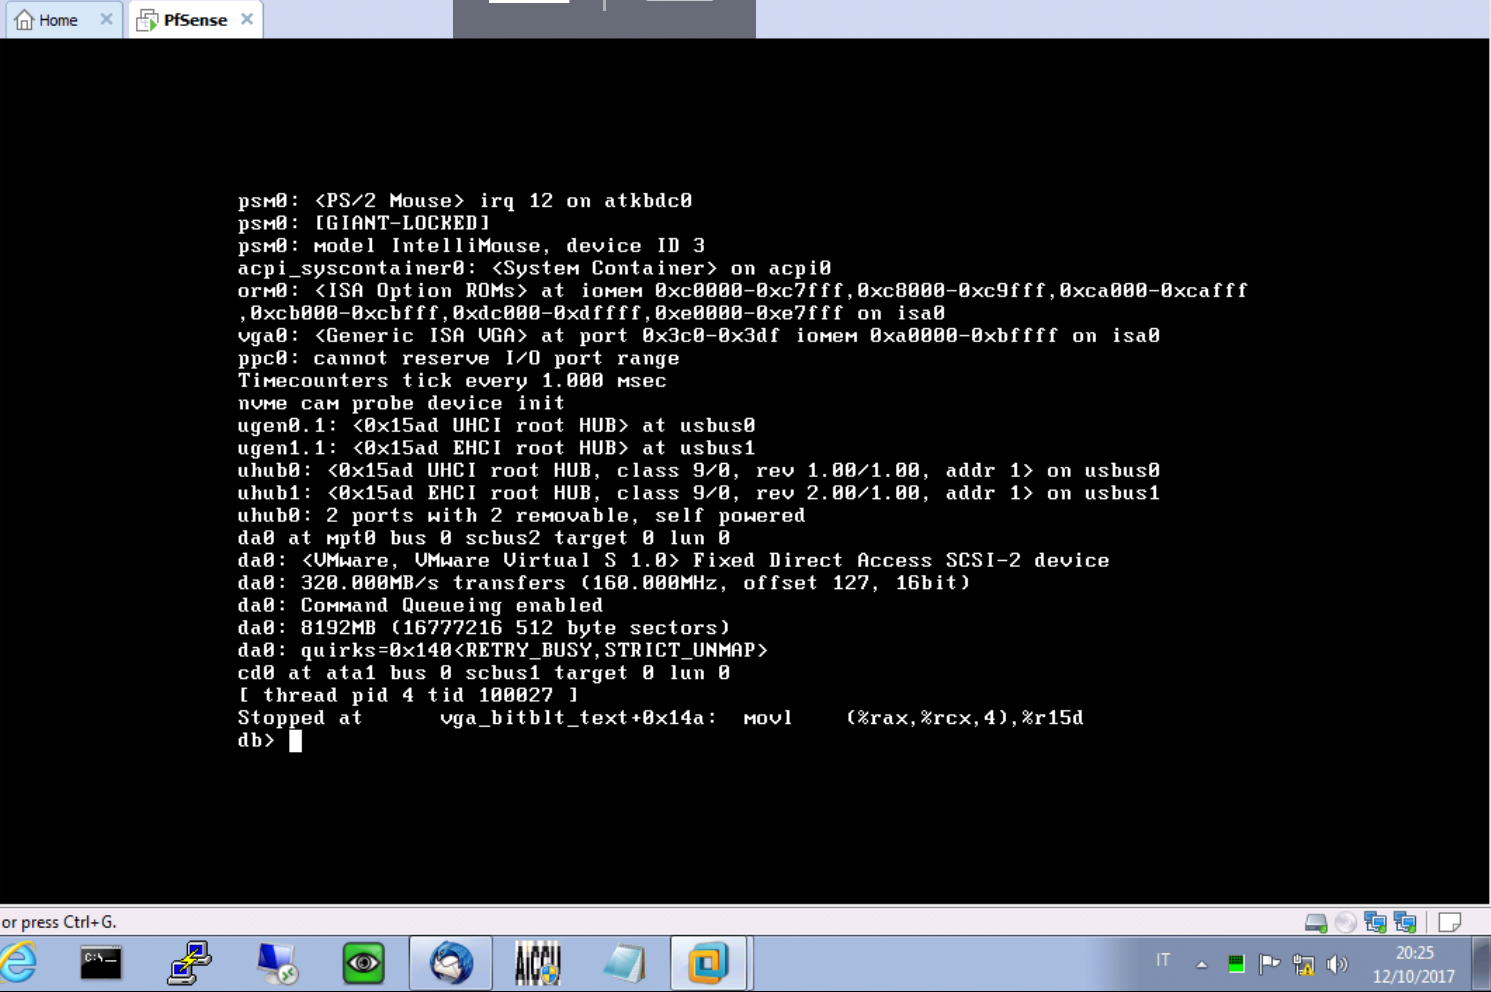 Bug #7925: VT race condition panic at boot on ESXi 6 5 0U1 and